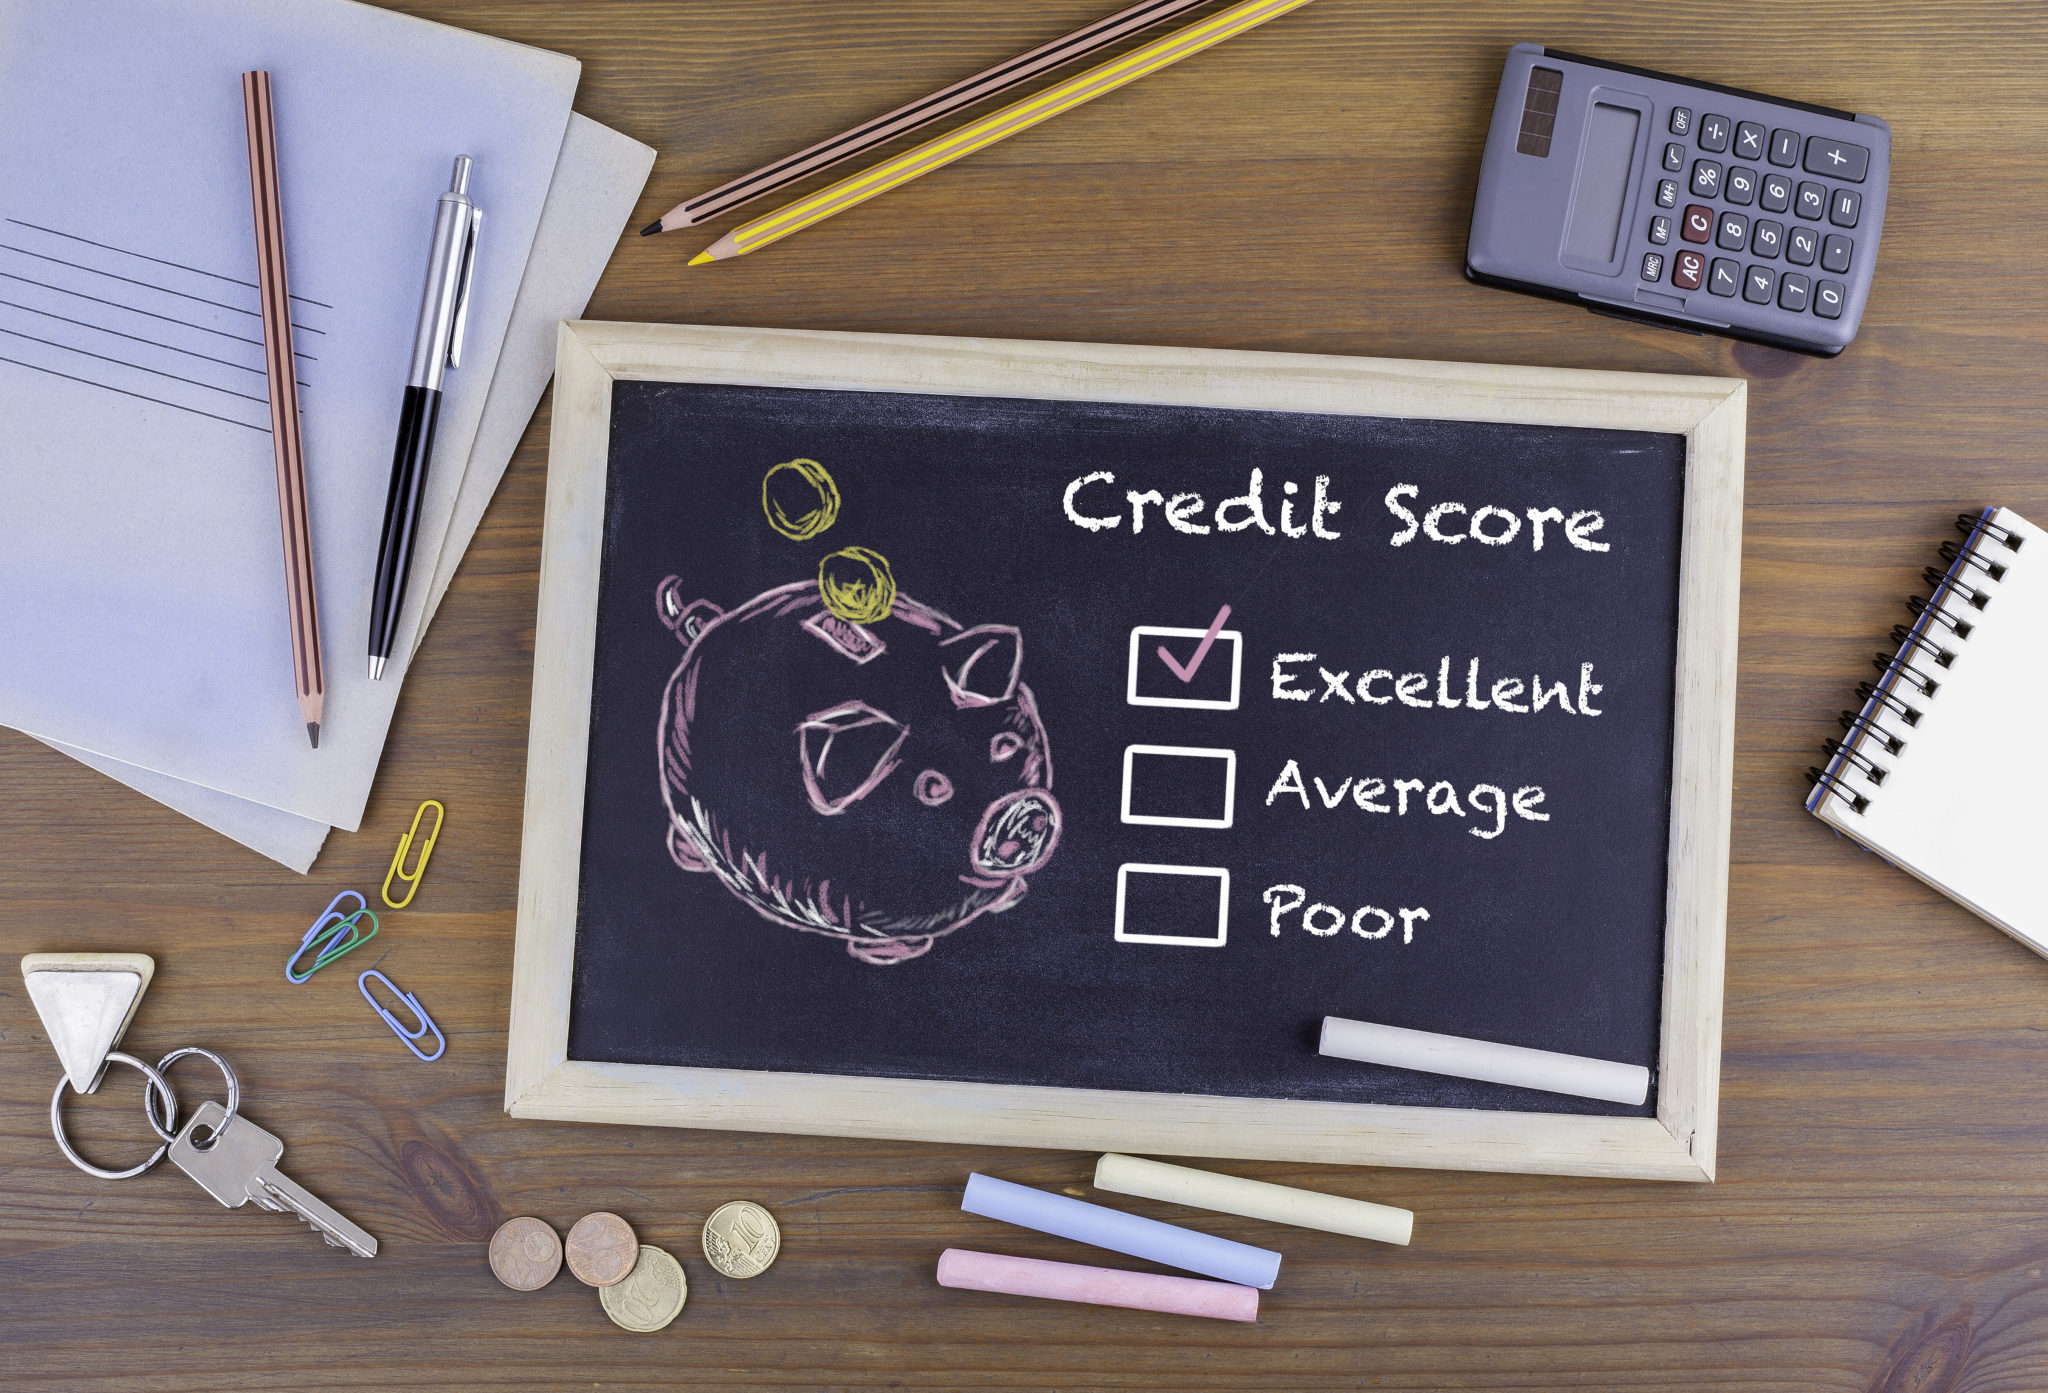 Excellent Credit Score concept. Chalkboard on wooden office desk